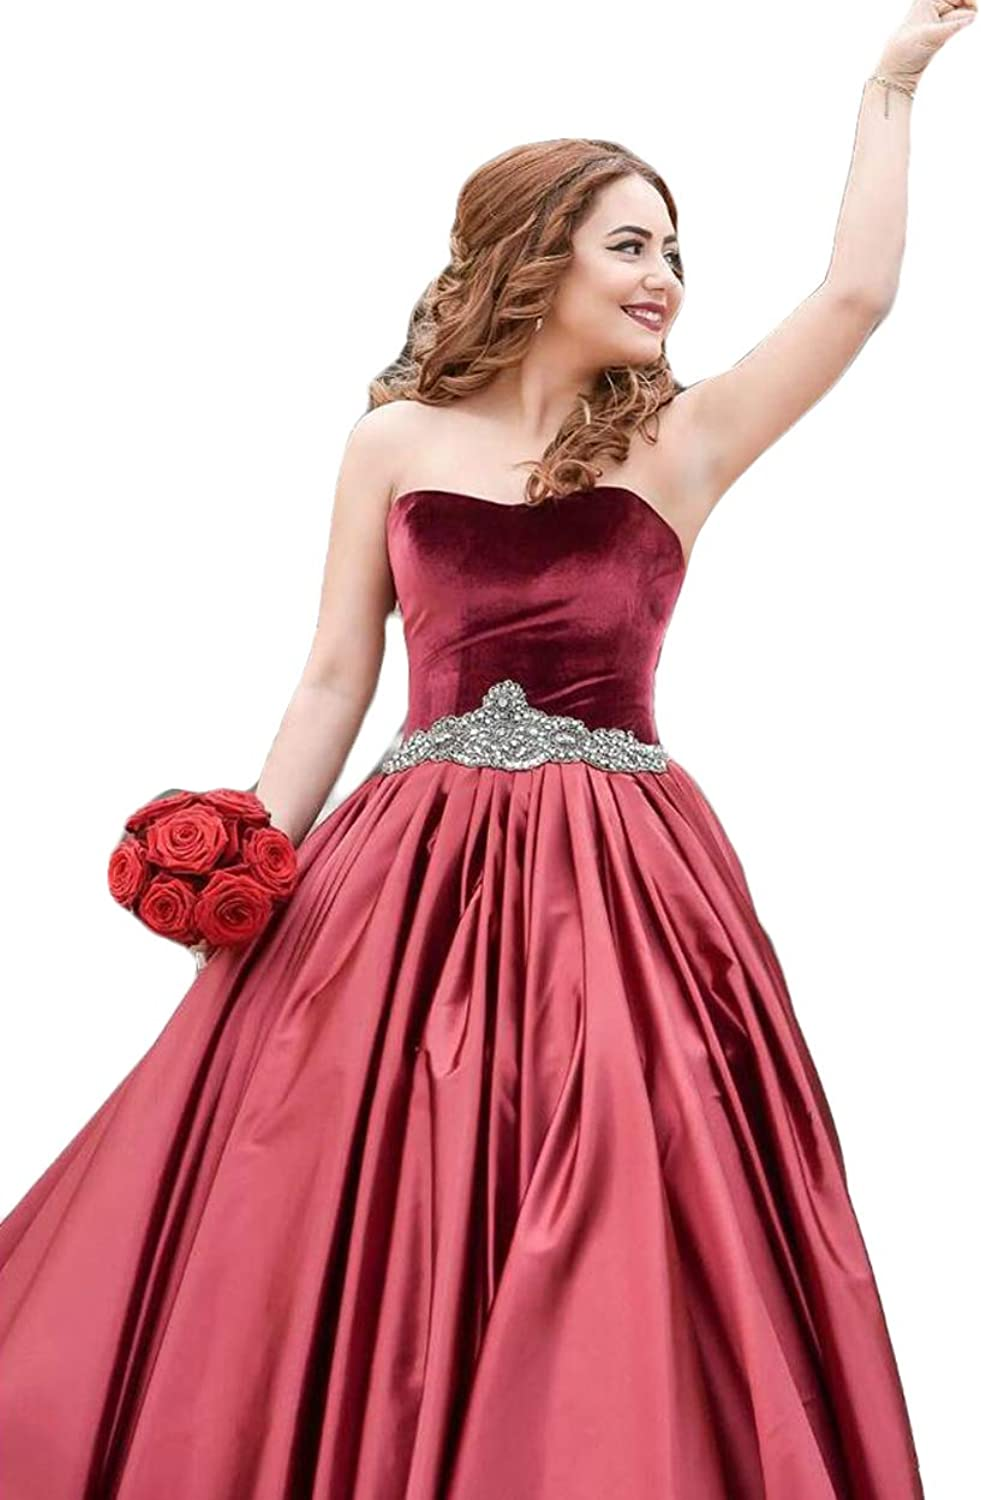 WZW Sweetheart Ball Gown Long Evening Dresses Burgundy Crystal Sash Special Occasion Formal Plus Size Prom Party Gowns